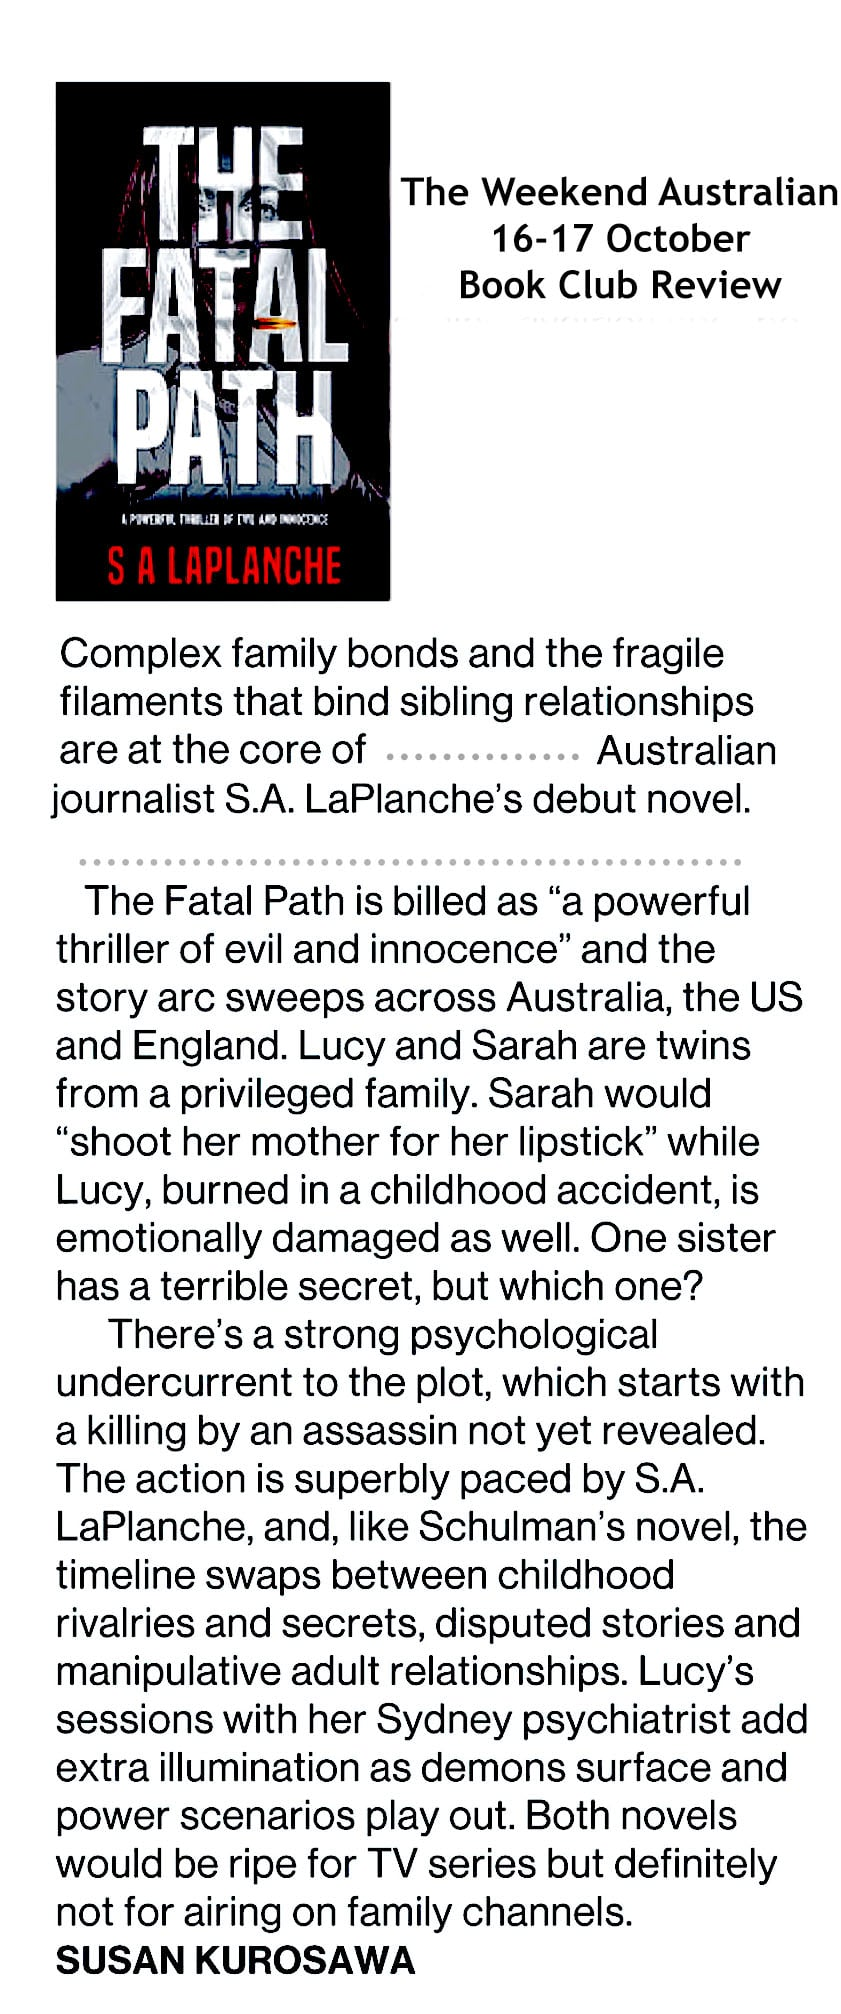 The Weekend Australian book review